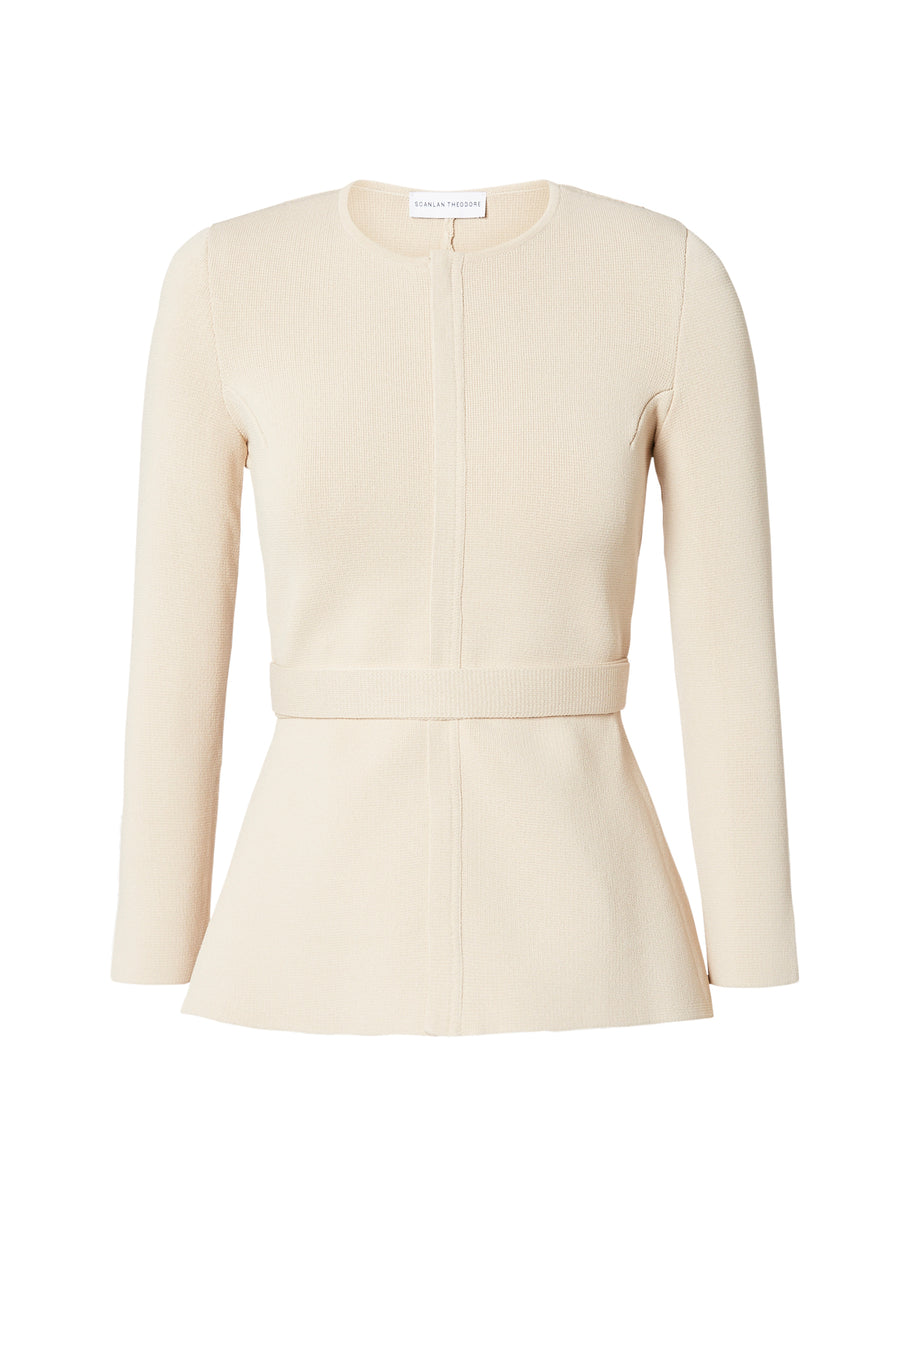 Crepe Knit Curved Hem Jacket, front zip, separate belt, peplum, Color Papiro